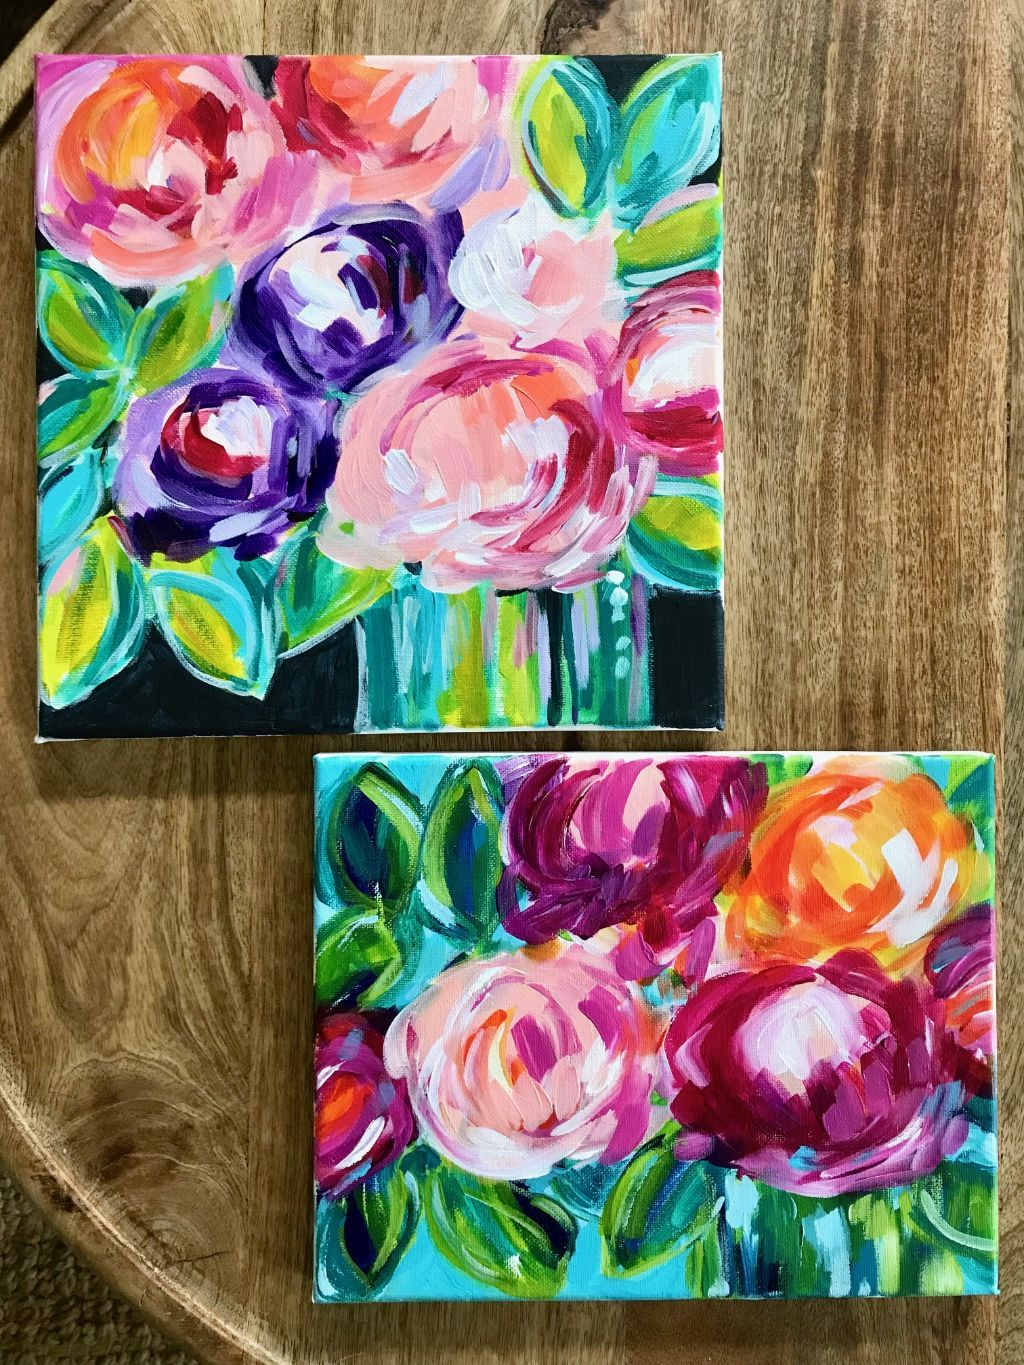 Tips And Techniques For Painting Abstract Flowers With Acrylics On Canvas In 2020 Easy Flower Painting Beginner Painting On Canvas Beginner Painting